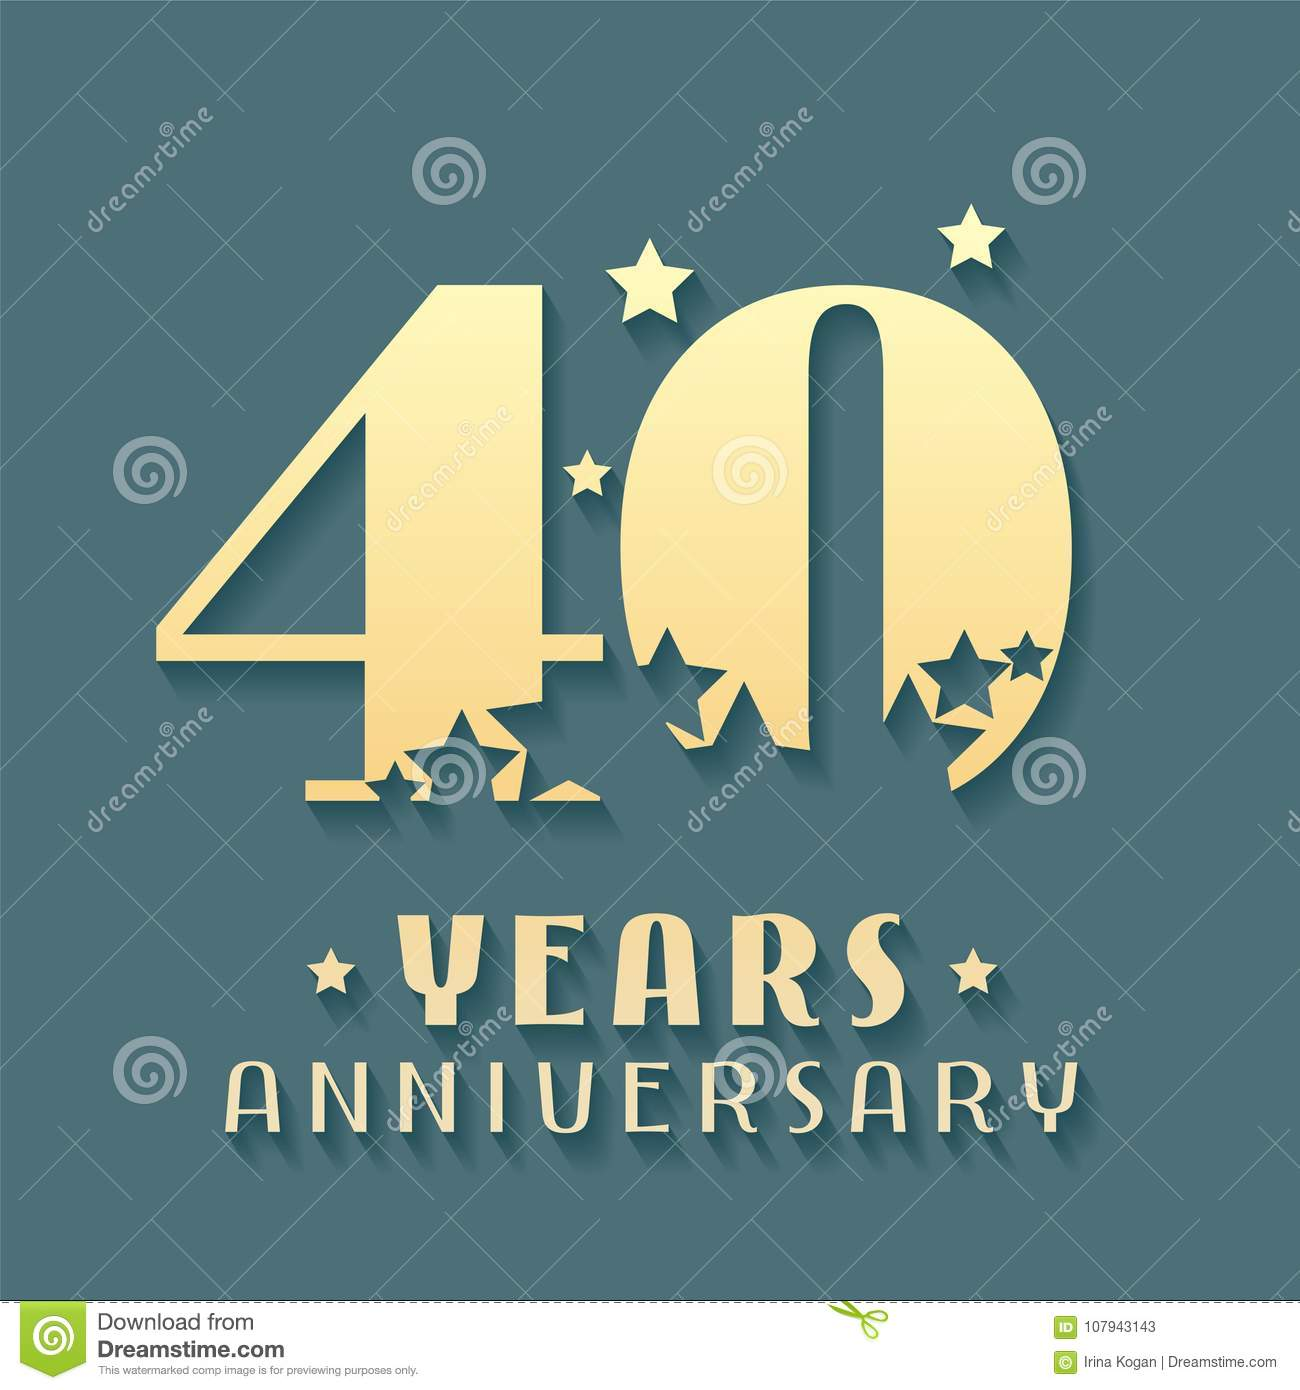 40 Years Anniversary Vector Icon Symbol Logo Graphic Design Element For 40th Birthday Card